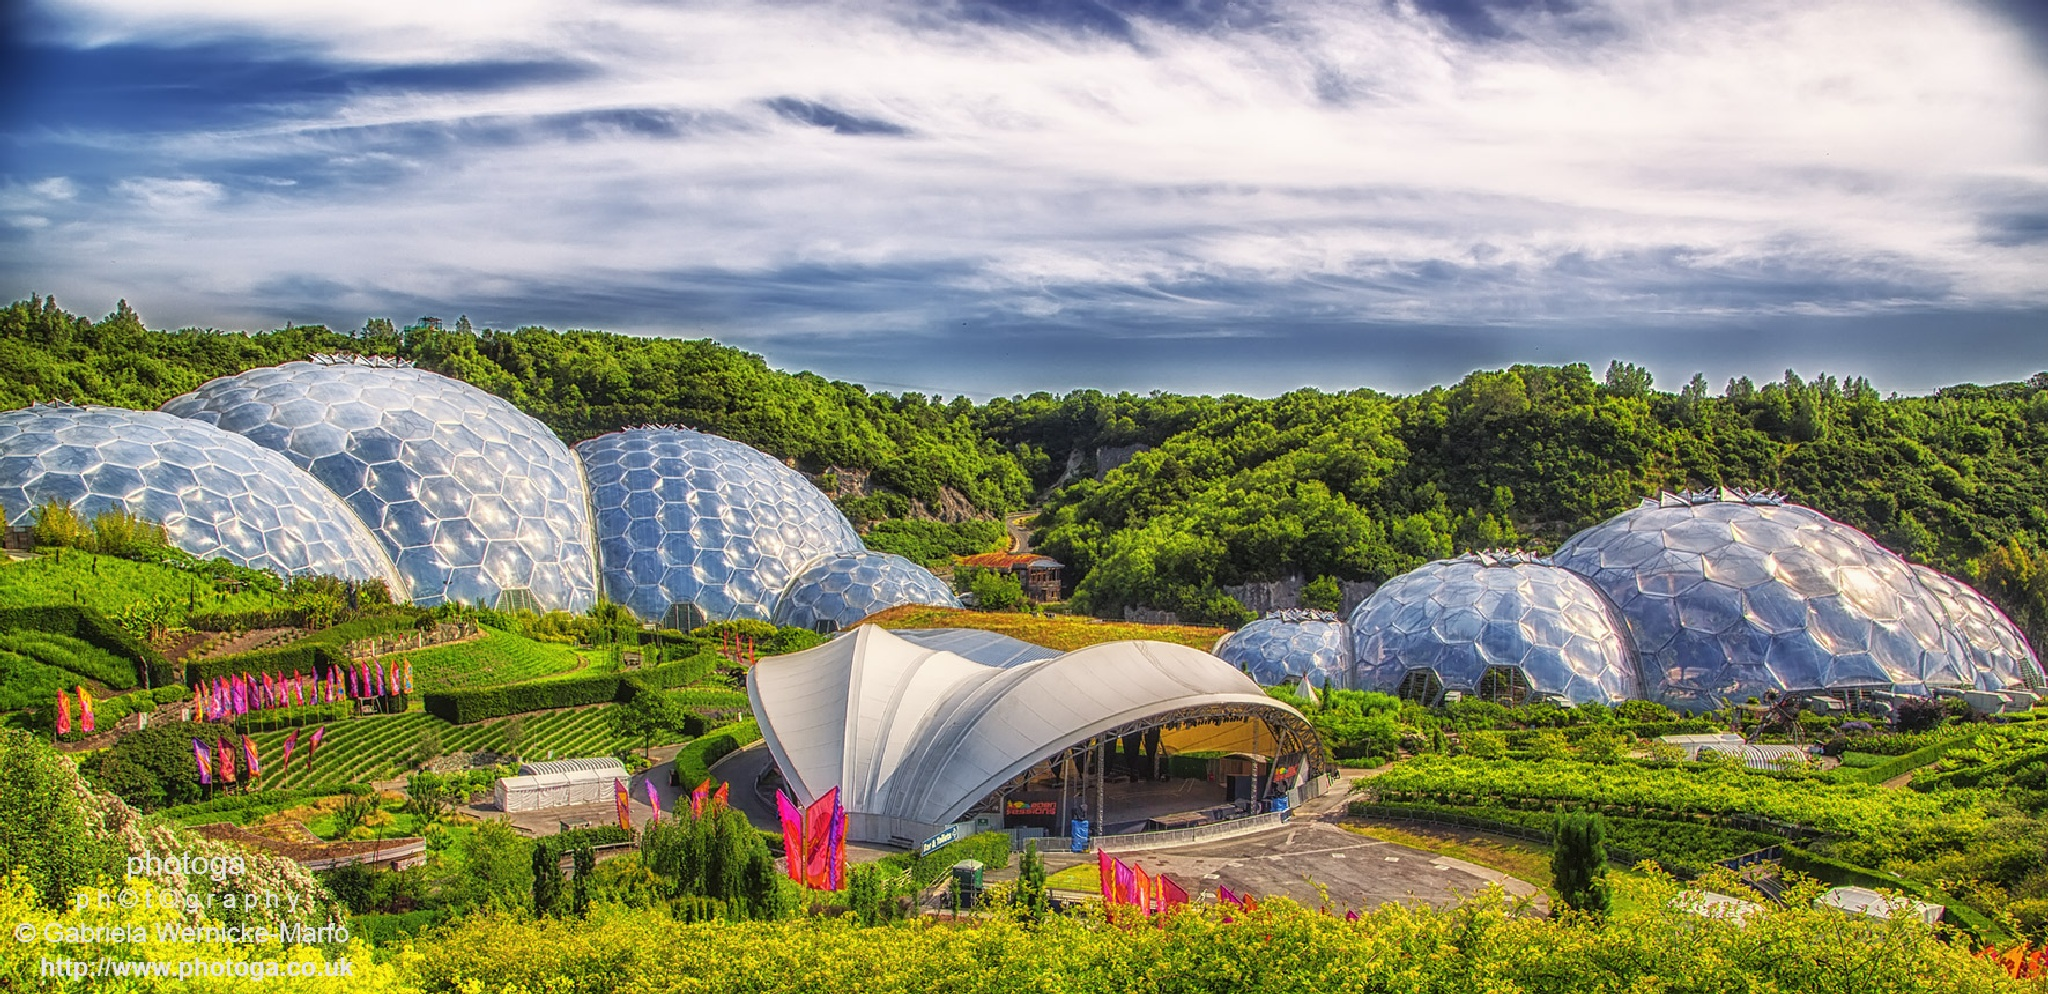 Eden Project by photogaphotography